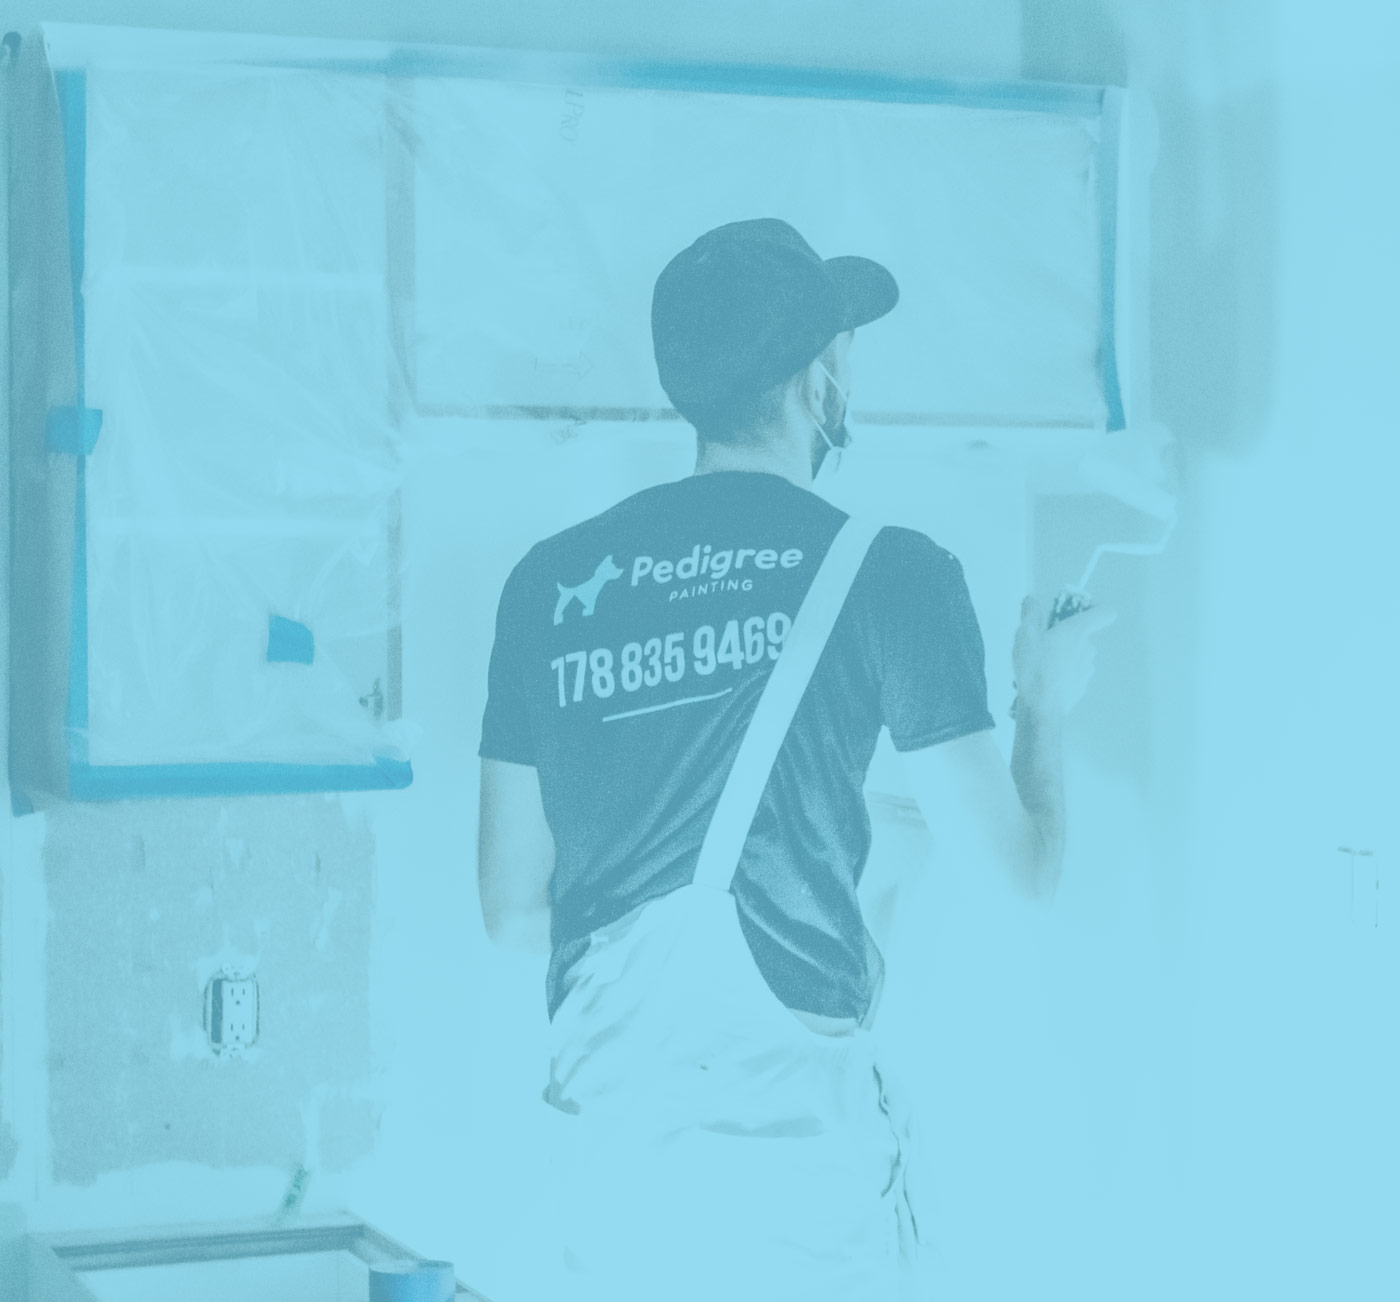 New Construction Painting Services, Pedigree Painting